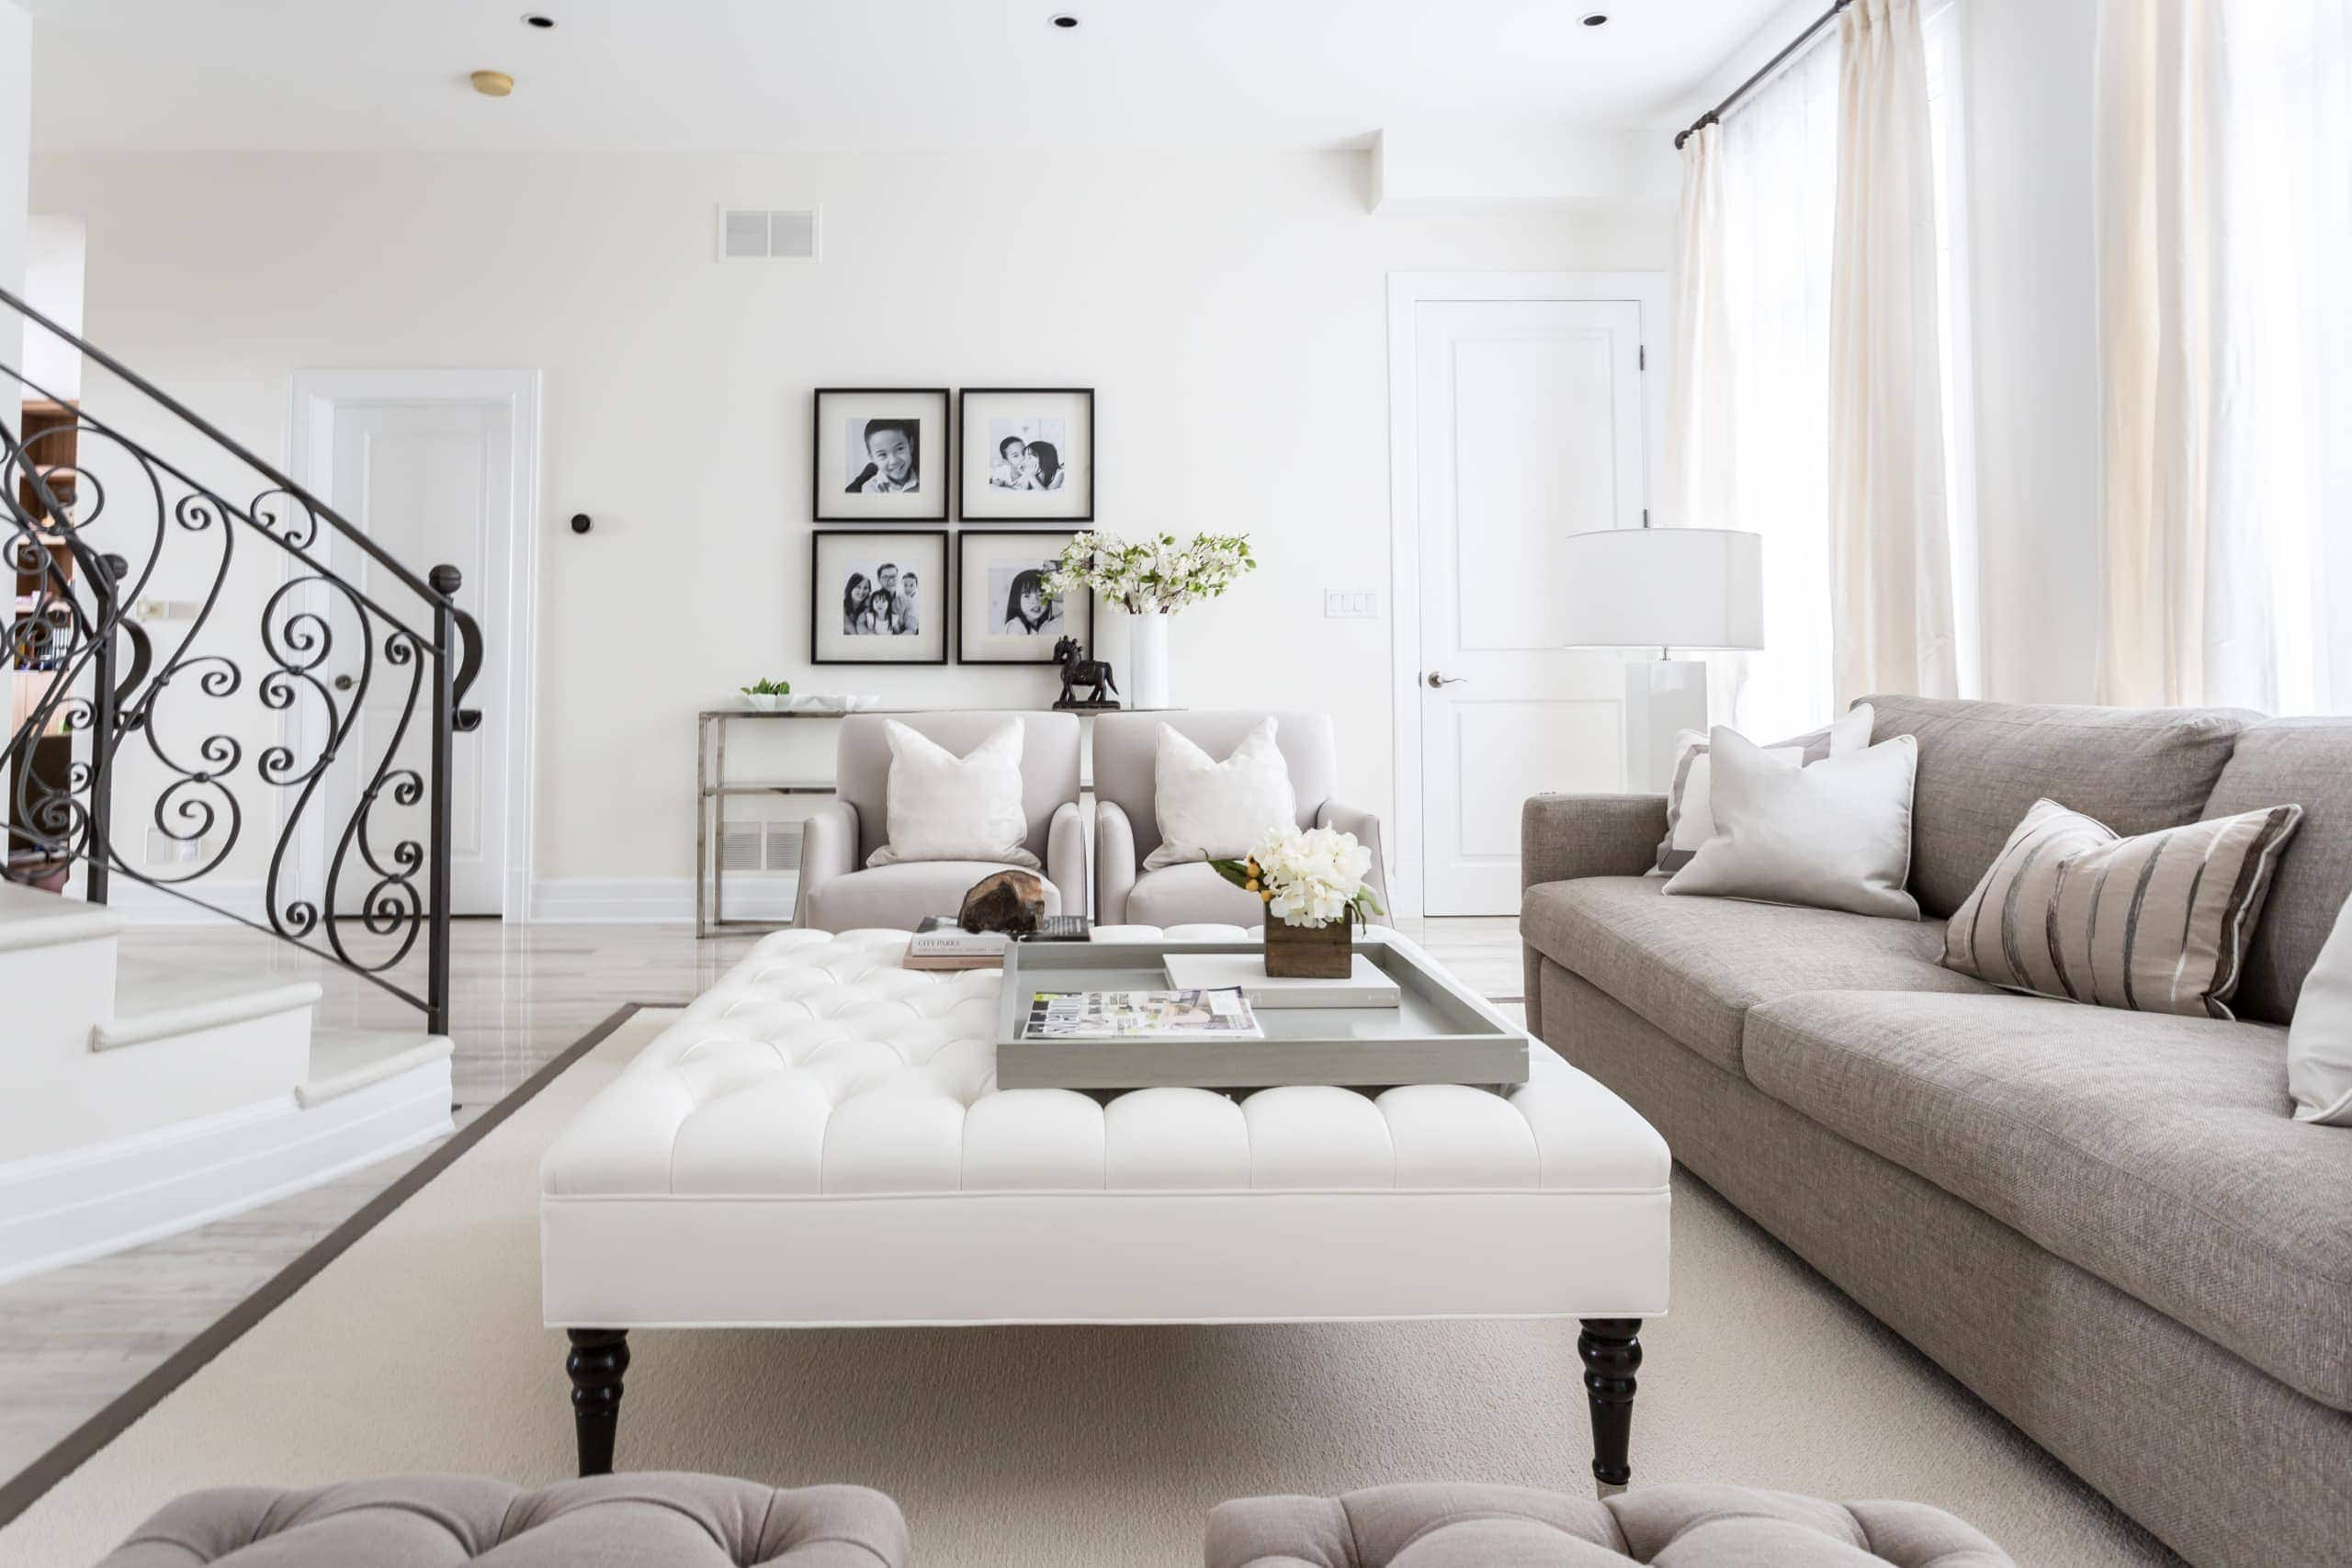 Bright living room with a focus on the large ottoman